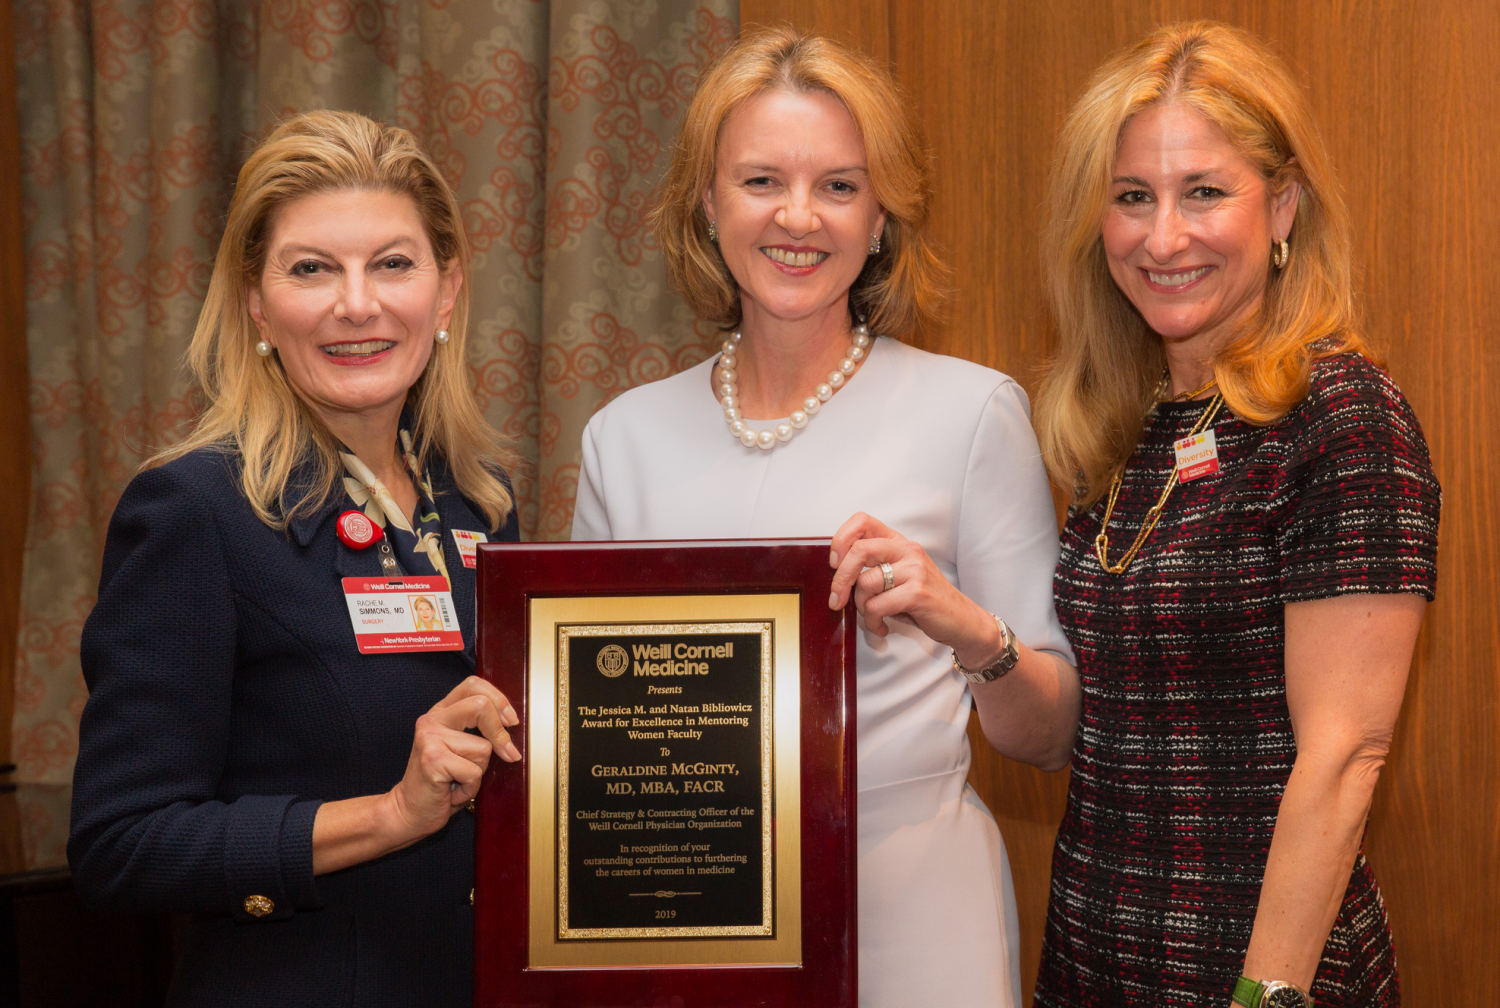 Dr. Geraldine McGinty accepts the 2019 Jessica M. and Natan Bibliowicz Award for Excellence in Mentoring Women Faculty from Jessica Bibliowicz and Dr. Rache Simmons. Credit: Ashley Jones